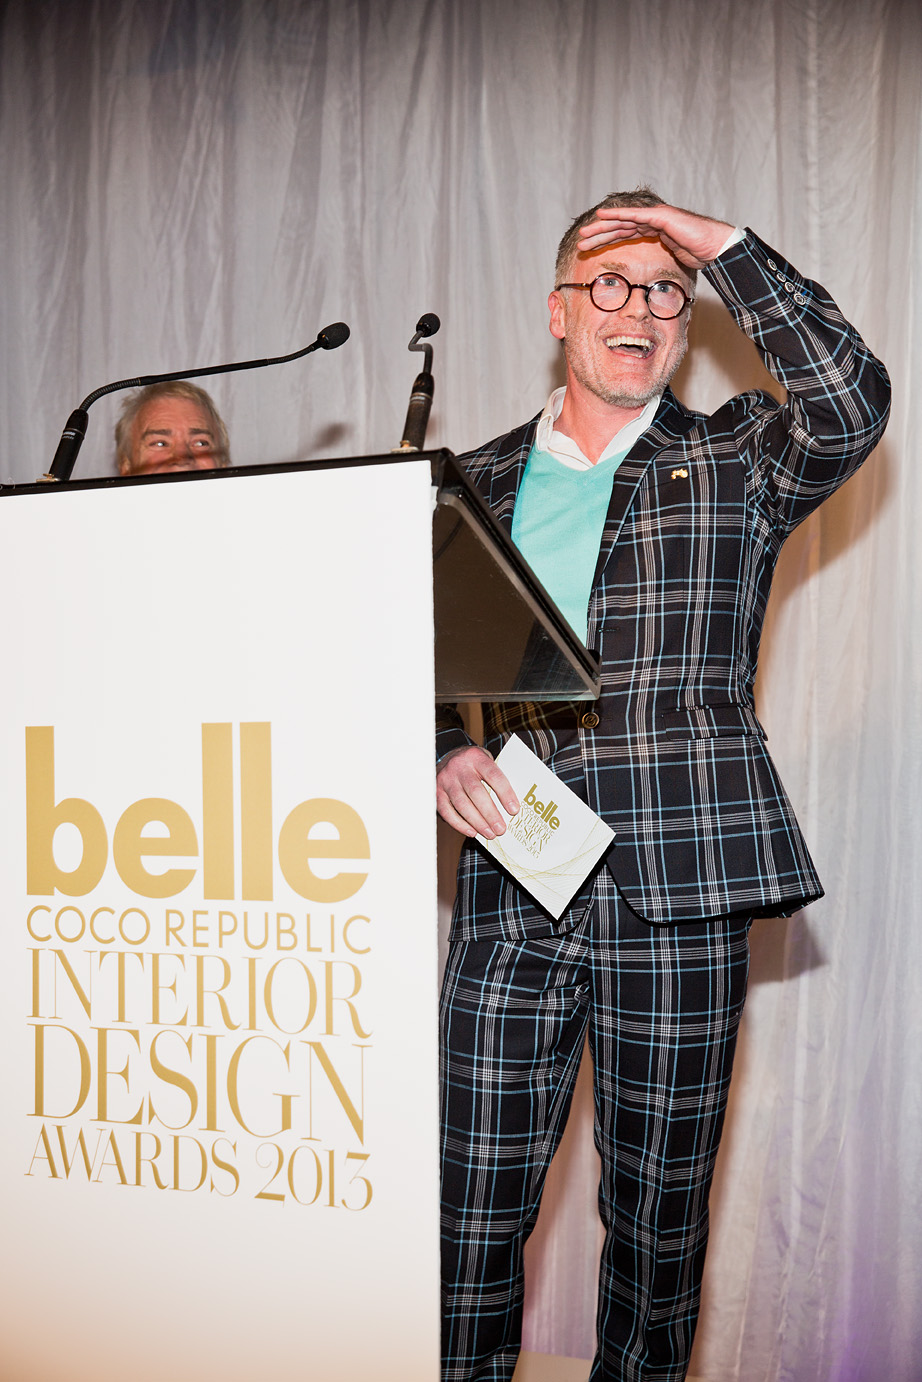 A delighted Paul Hecker collects the interior designer of the year award on behalf of himself and business partner Hamish Guthrie, who couldn't be there because his wife is due to give birth very soon!